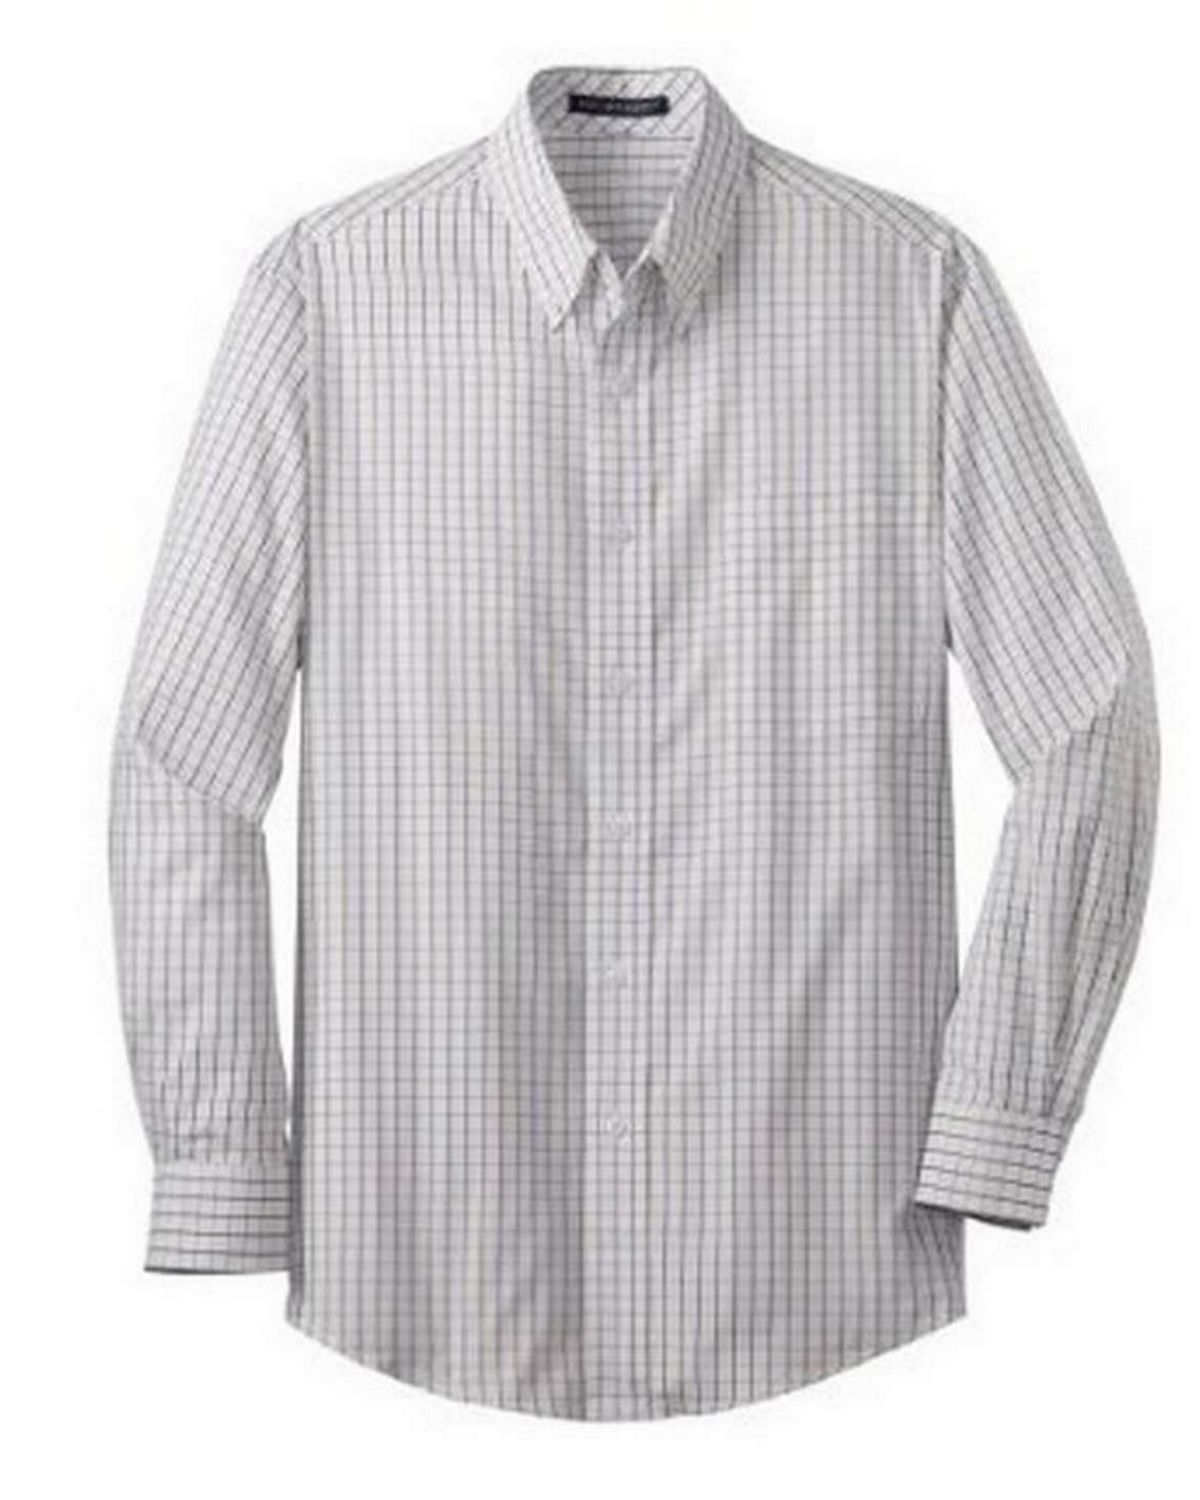 Port Authority S642 Easy Care Tattersal Shirt